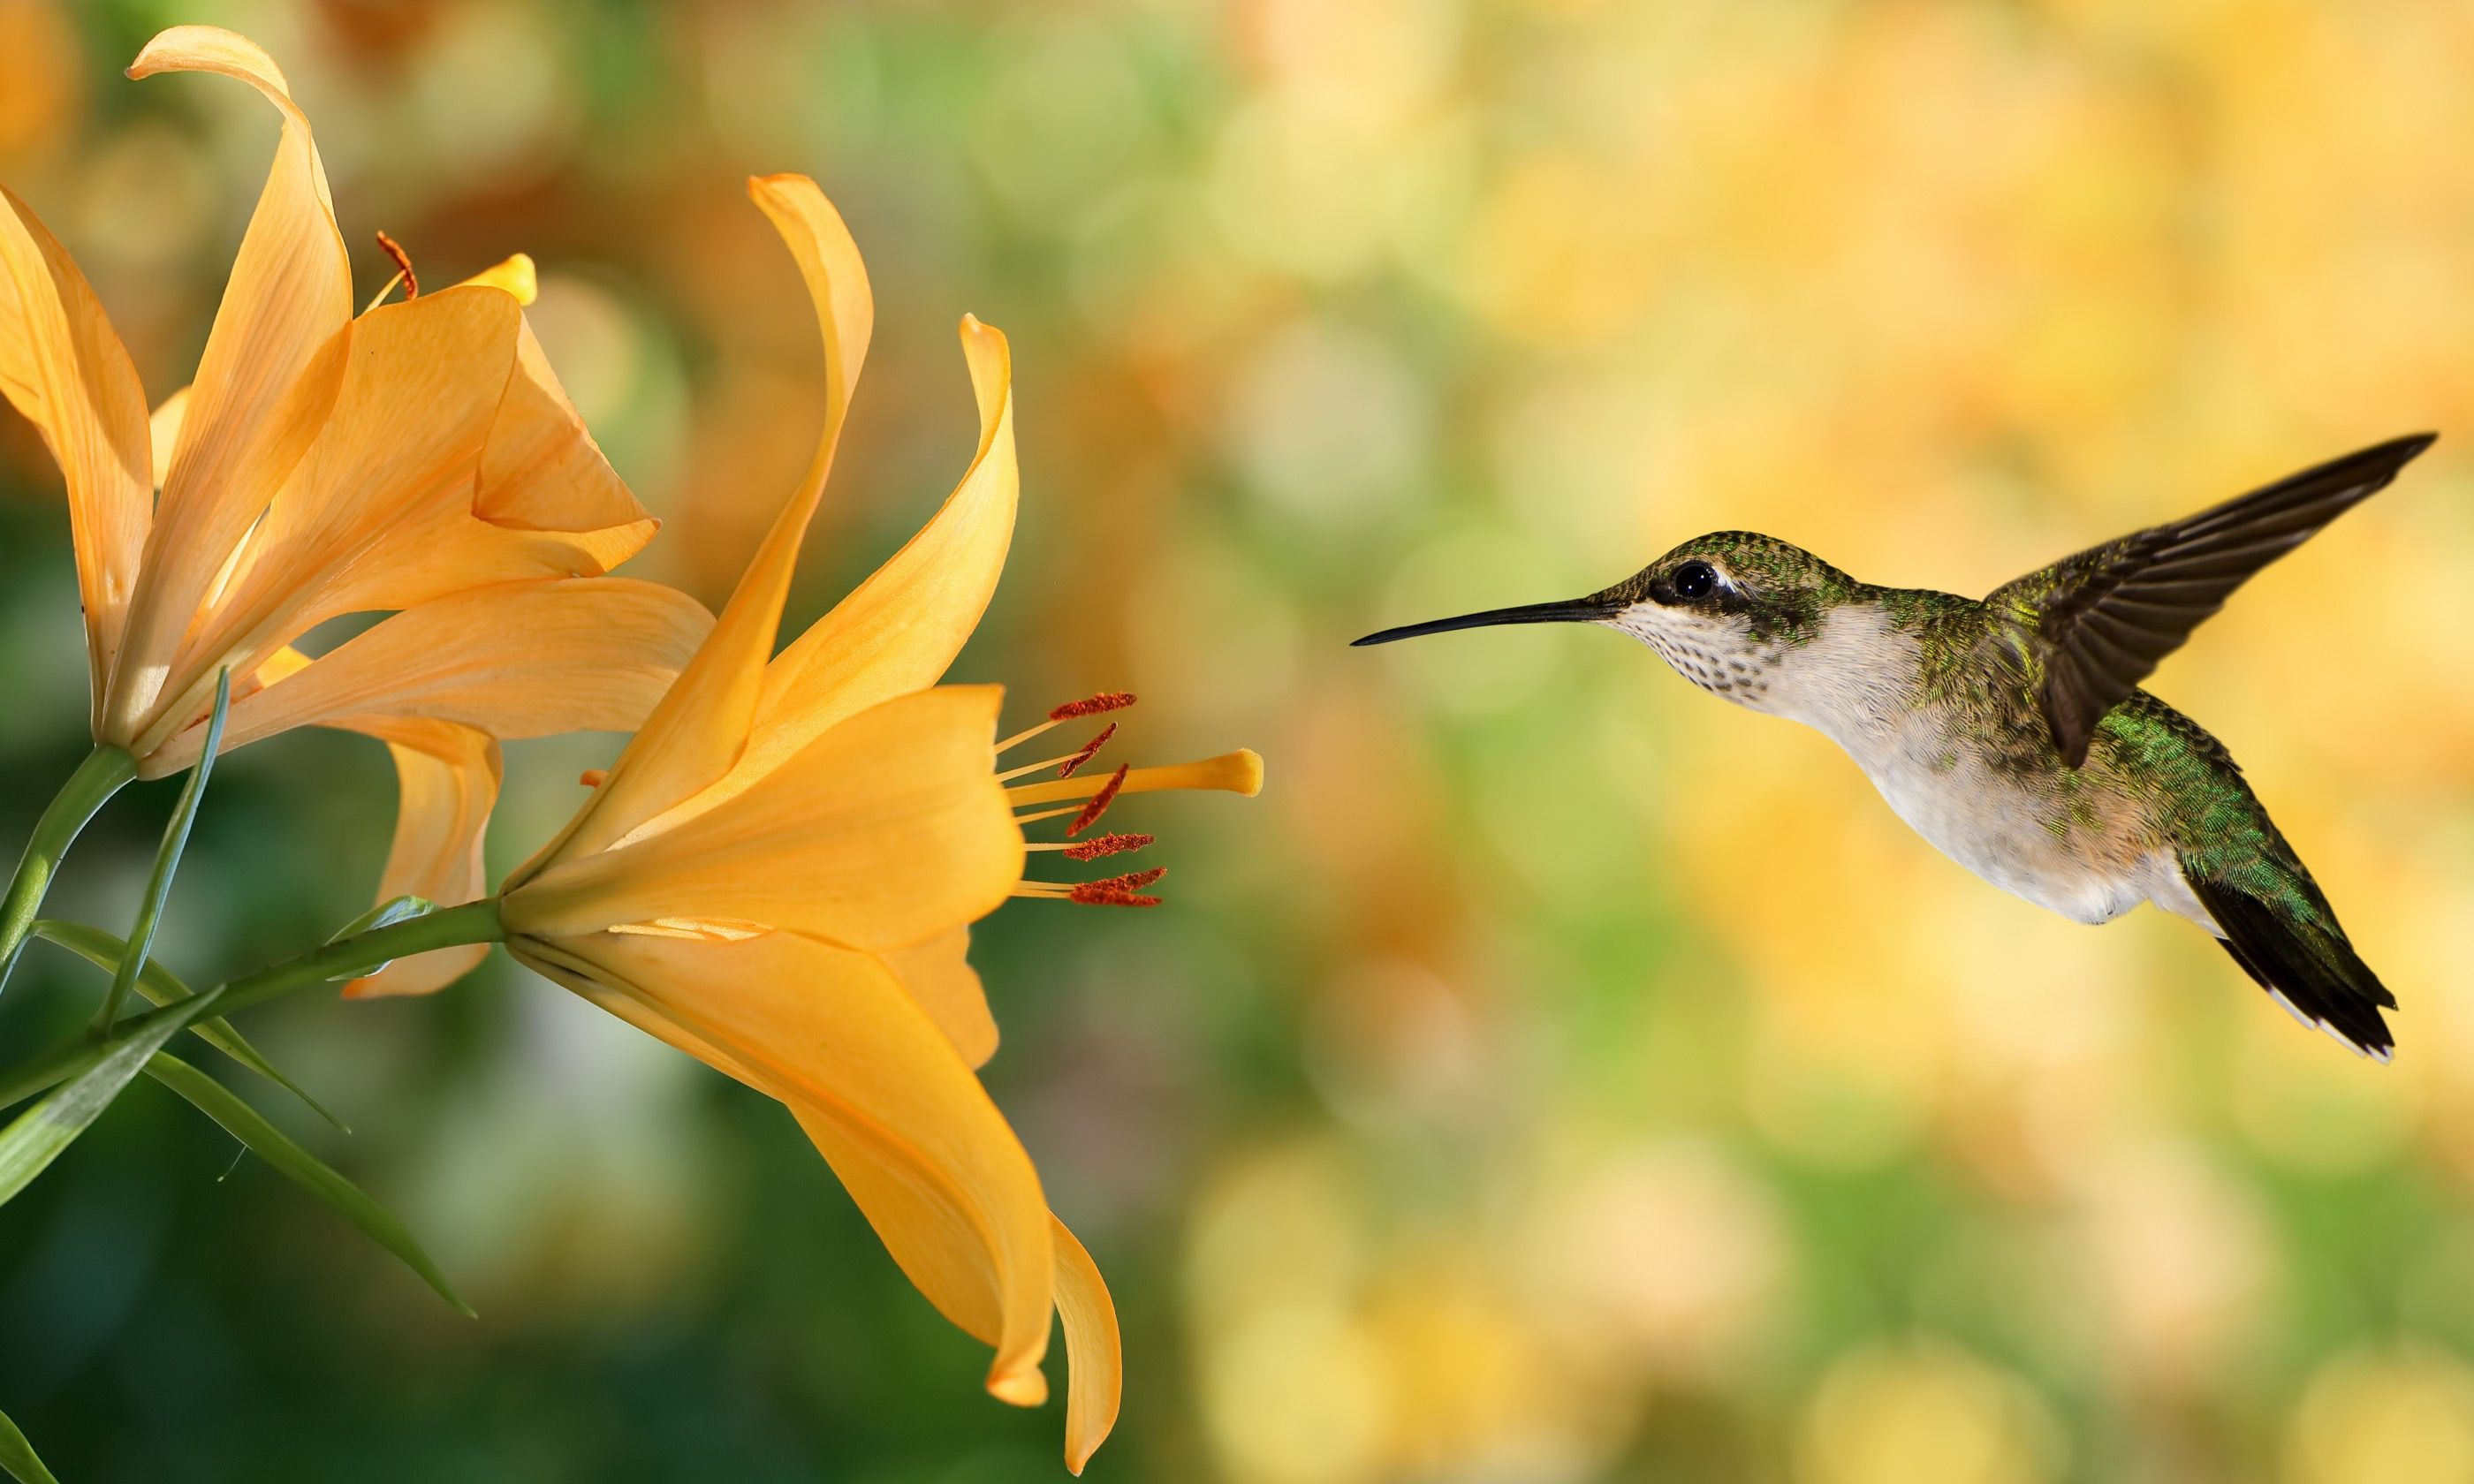 Hummingbird in flight (Shutterstock.com)